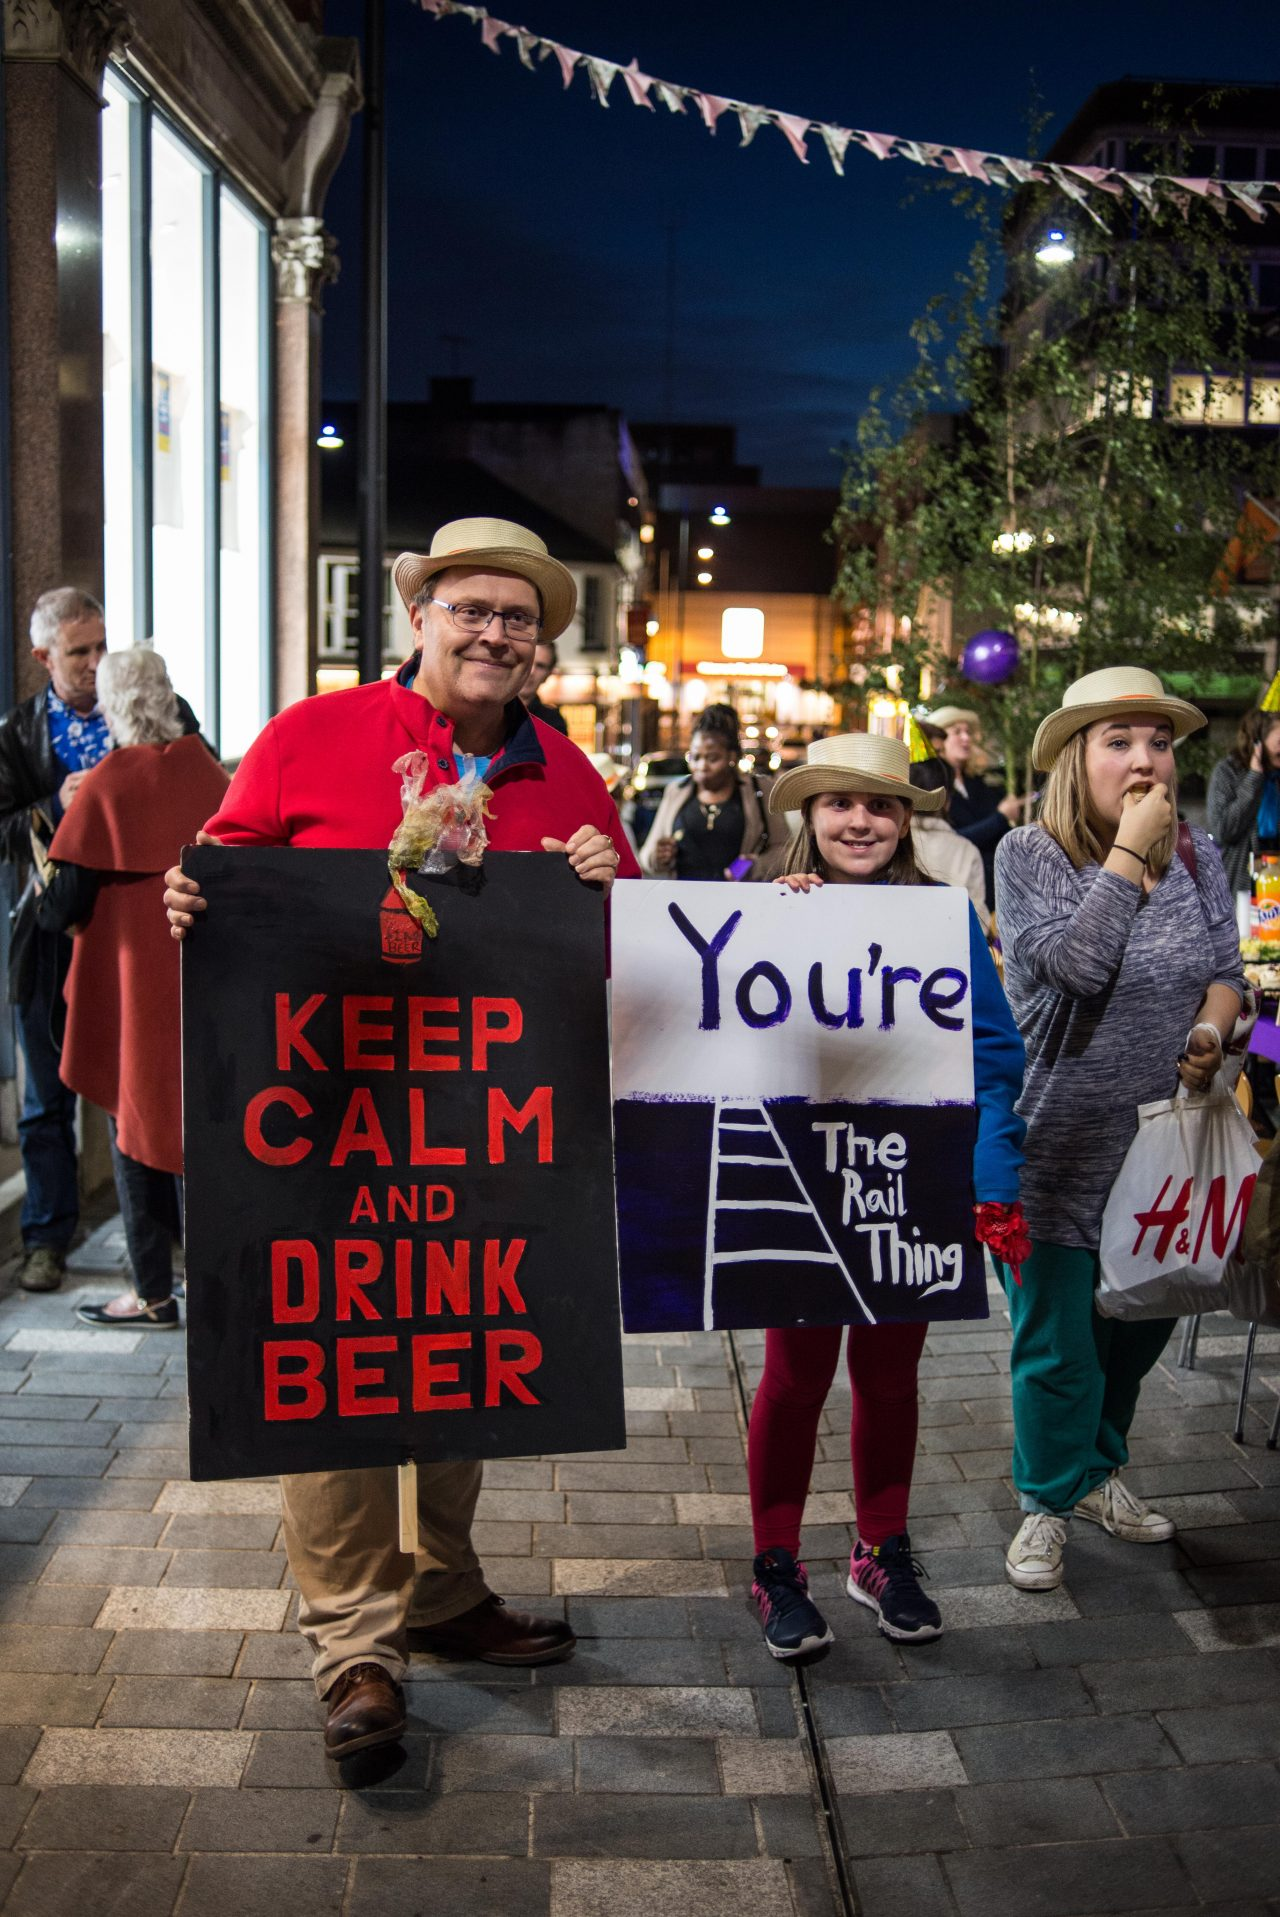 A father and his daughter wearing straw hats and carrying placards stating 'Keep Calm and Drink Beer' and 'You're The Rail Thing,' welcoming home commuters.